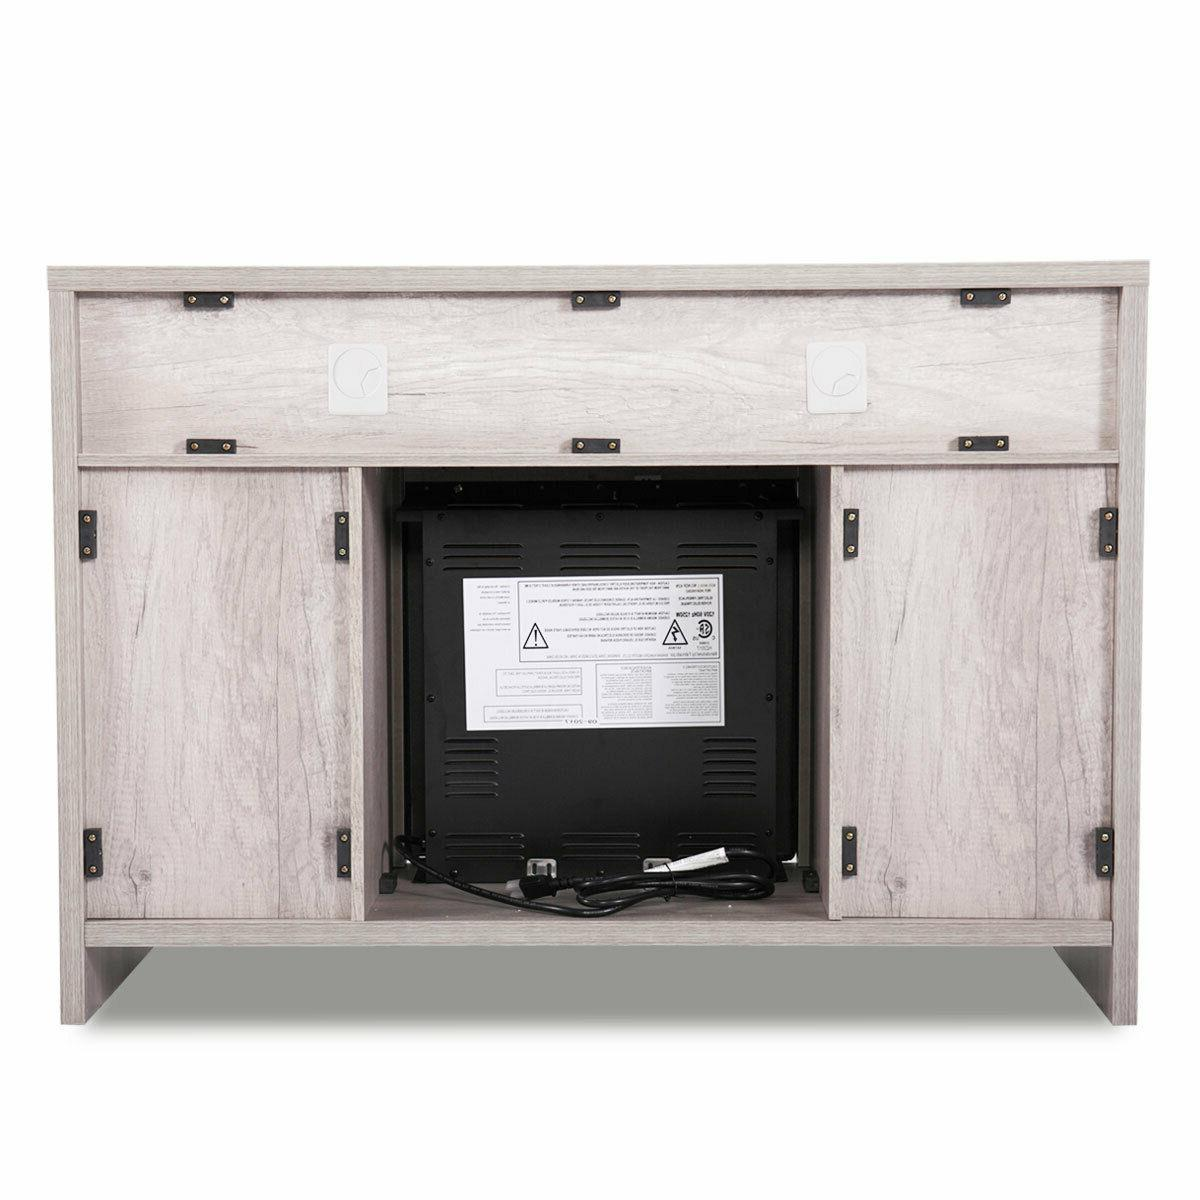 Fireplace Storage Console Heater to